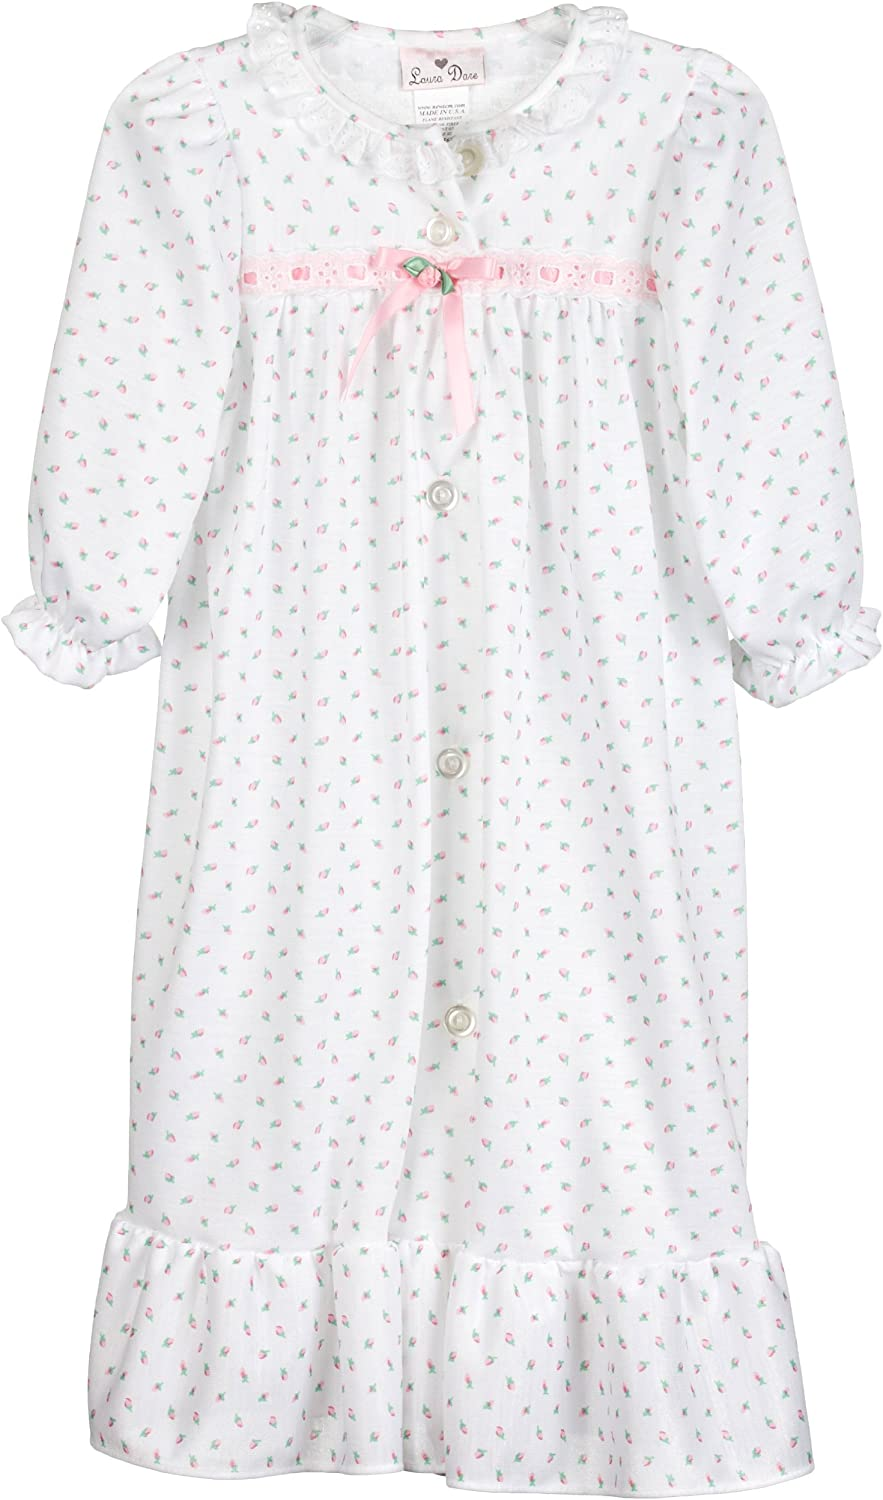 Laura Dare Little Girls Blue Pink Dancer Print Long Sleeved Nightgown 2T-6X